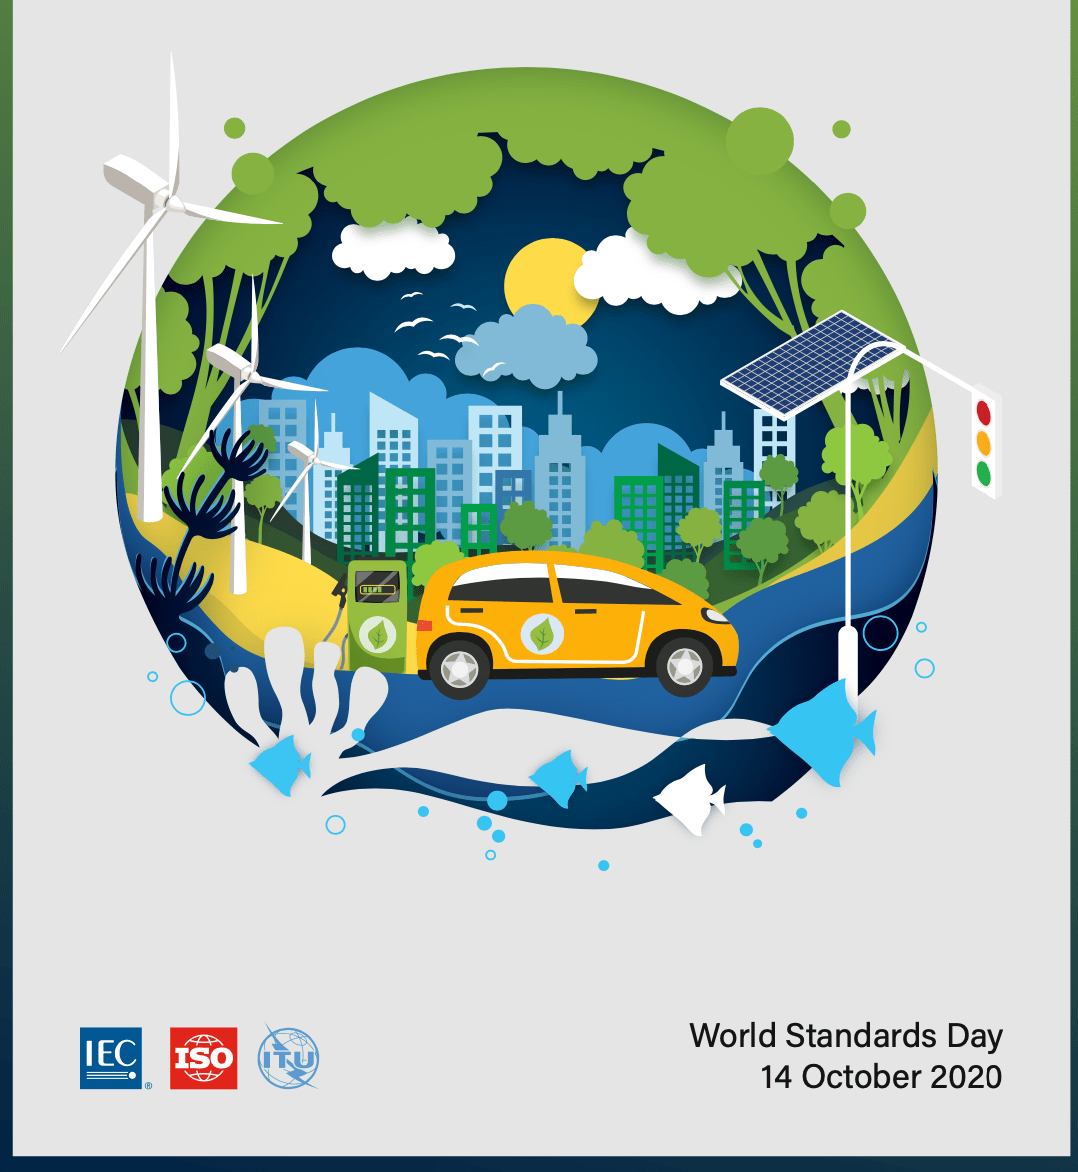 Protecting the World With Standards: Celebrating World Standards Day 2020